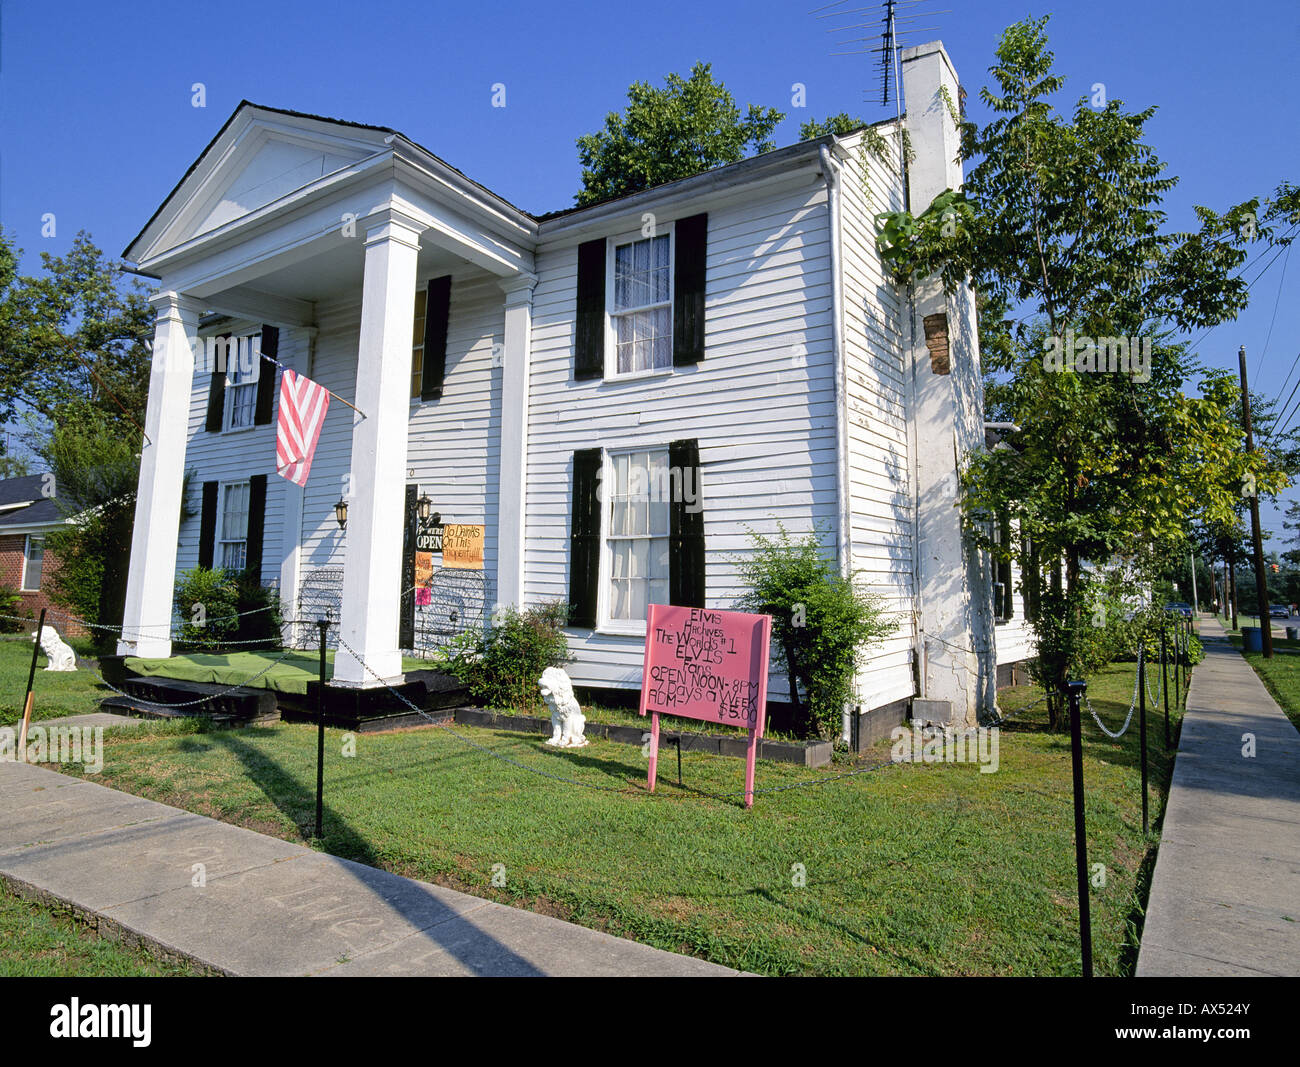 A view of the Elvis Presley Museum in Tupelo Mississippi birthplace of Elvis Presley - Stock Image